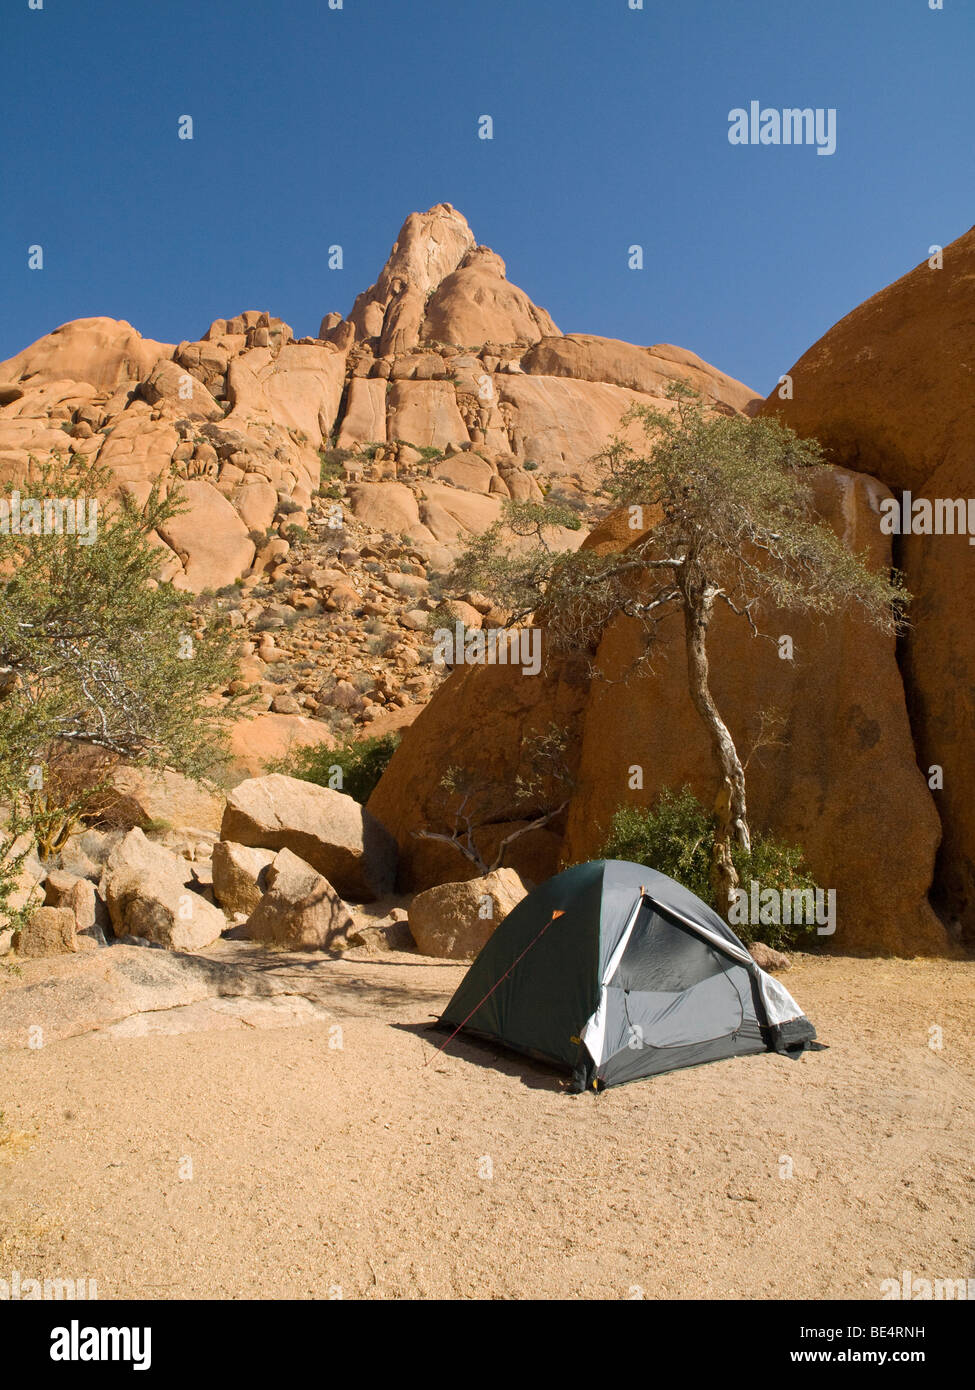 Campground at the foot of Spitzkoppe mountain, Namibia, Africa Stock Photo